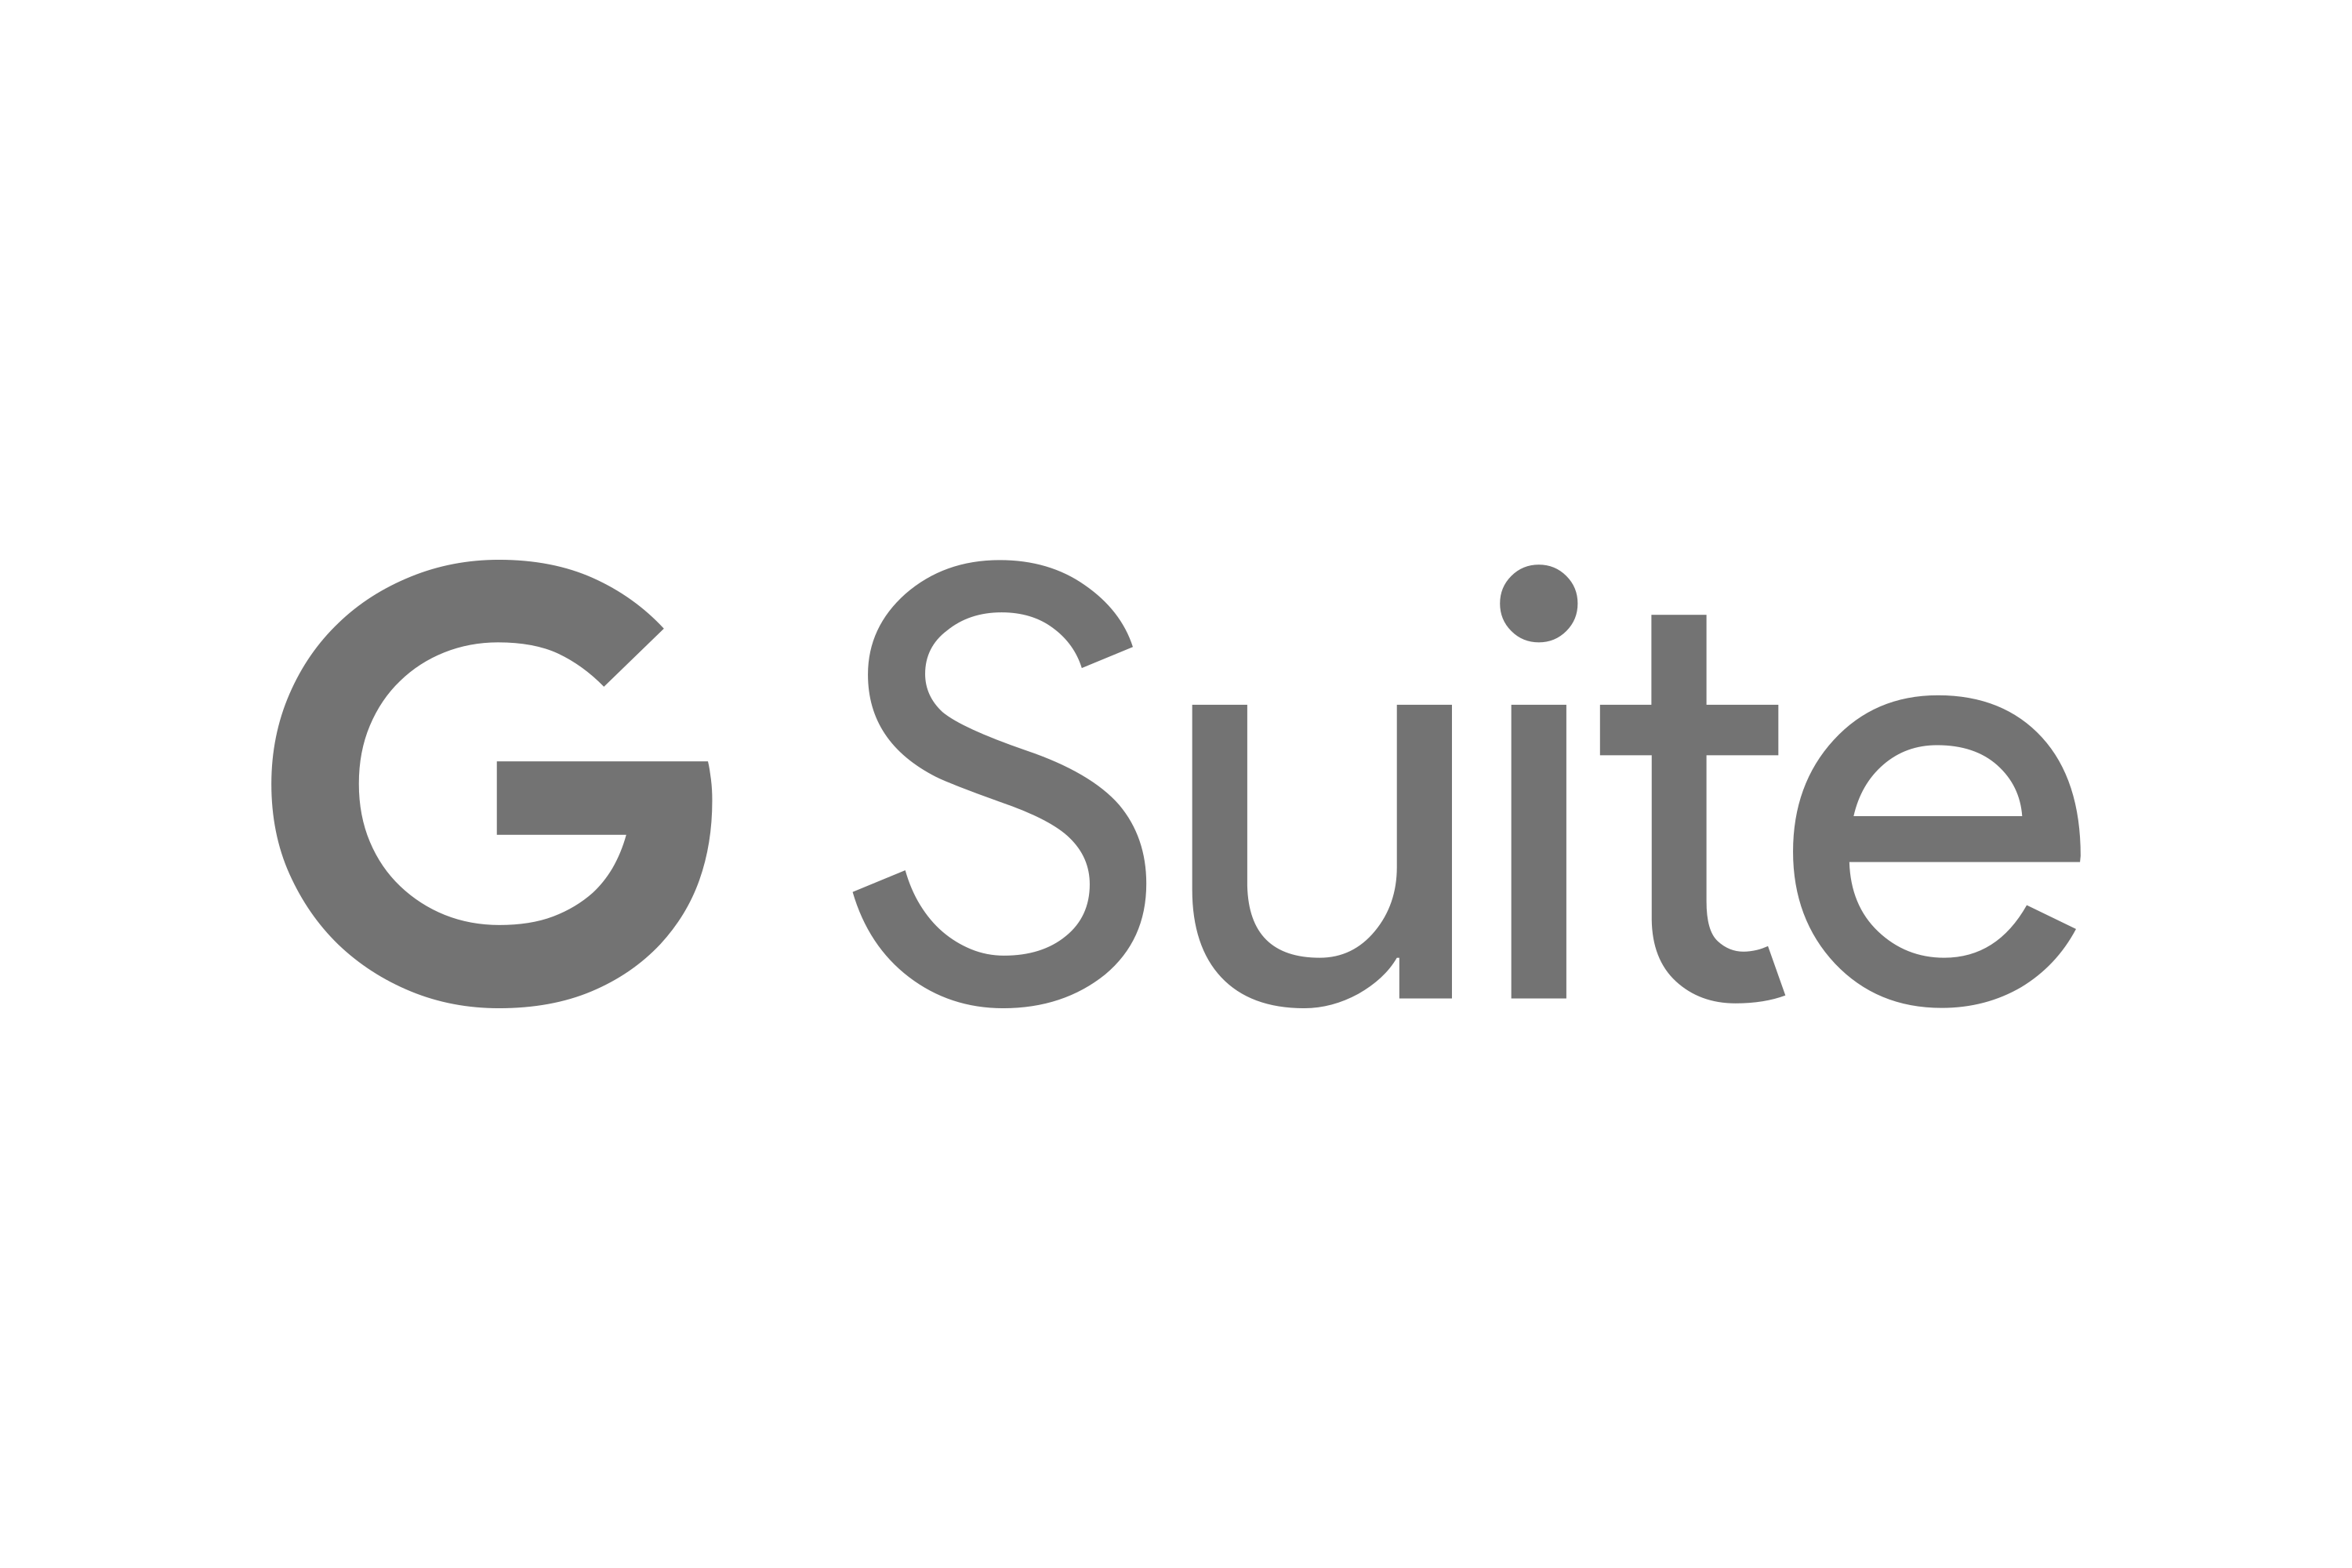 download g suite google apps for your domain logo in svg vector or png file format logo wine download g suite google apps for your